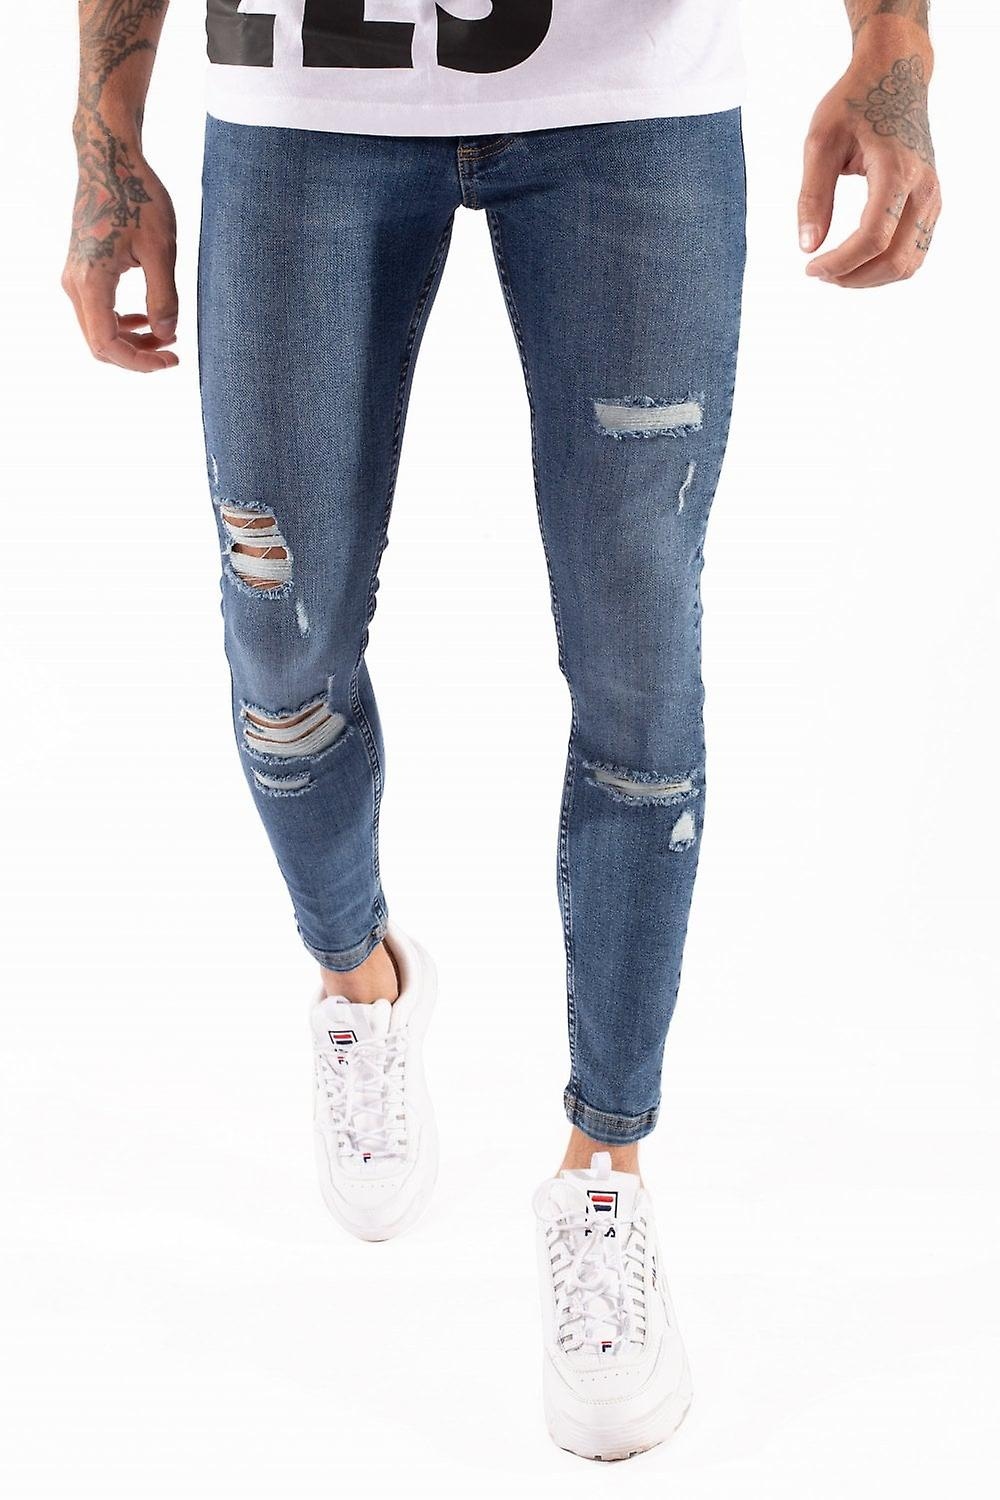 11 Degrees Distressed Jeans Skinny Fit - Mid bleu Wash